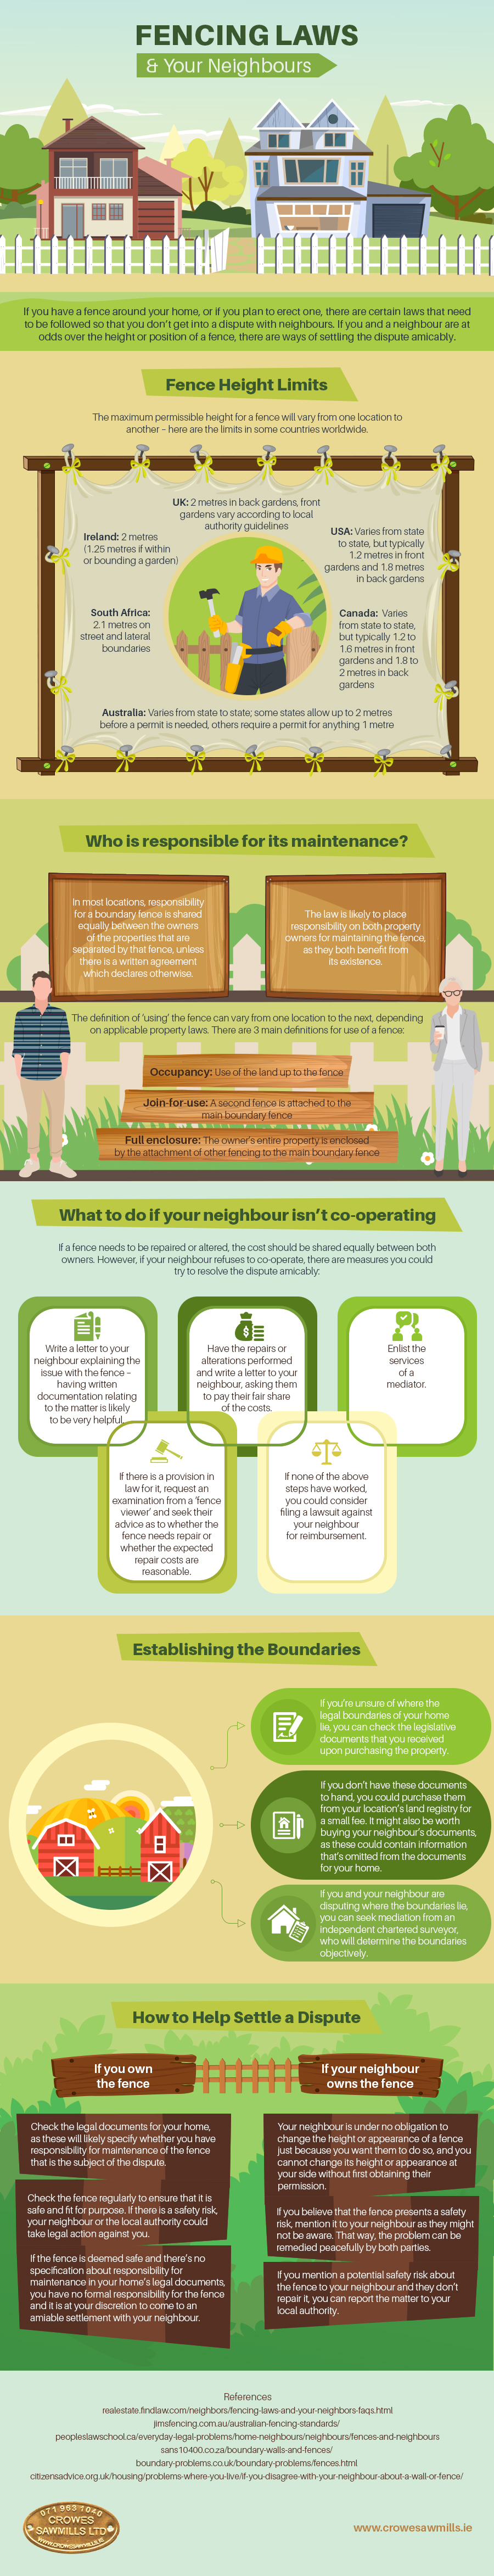 Fencing-laws-and-Your-Neighbors